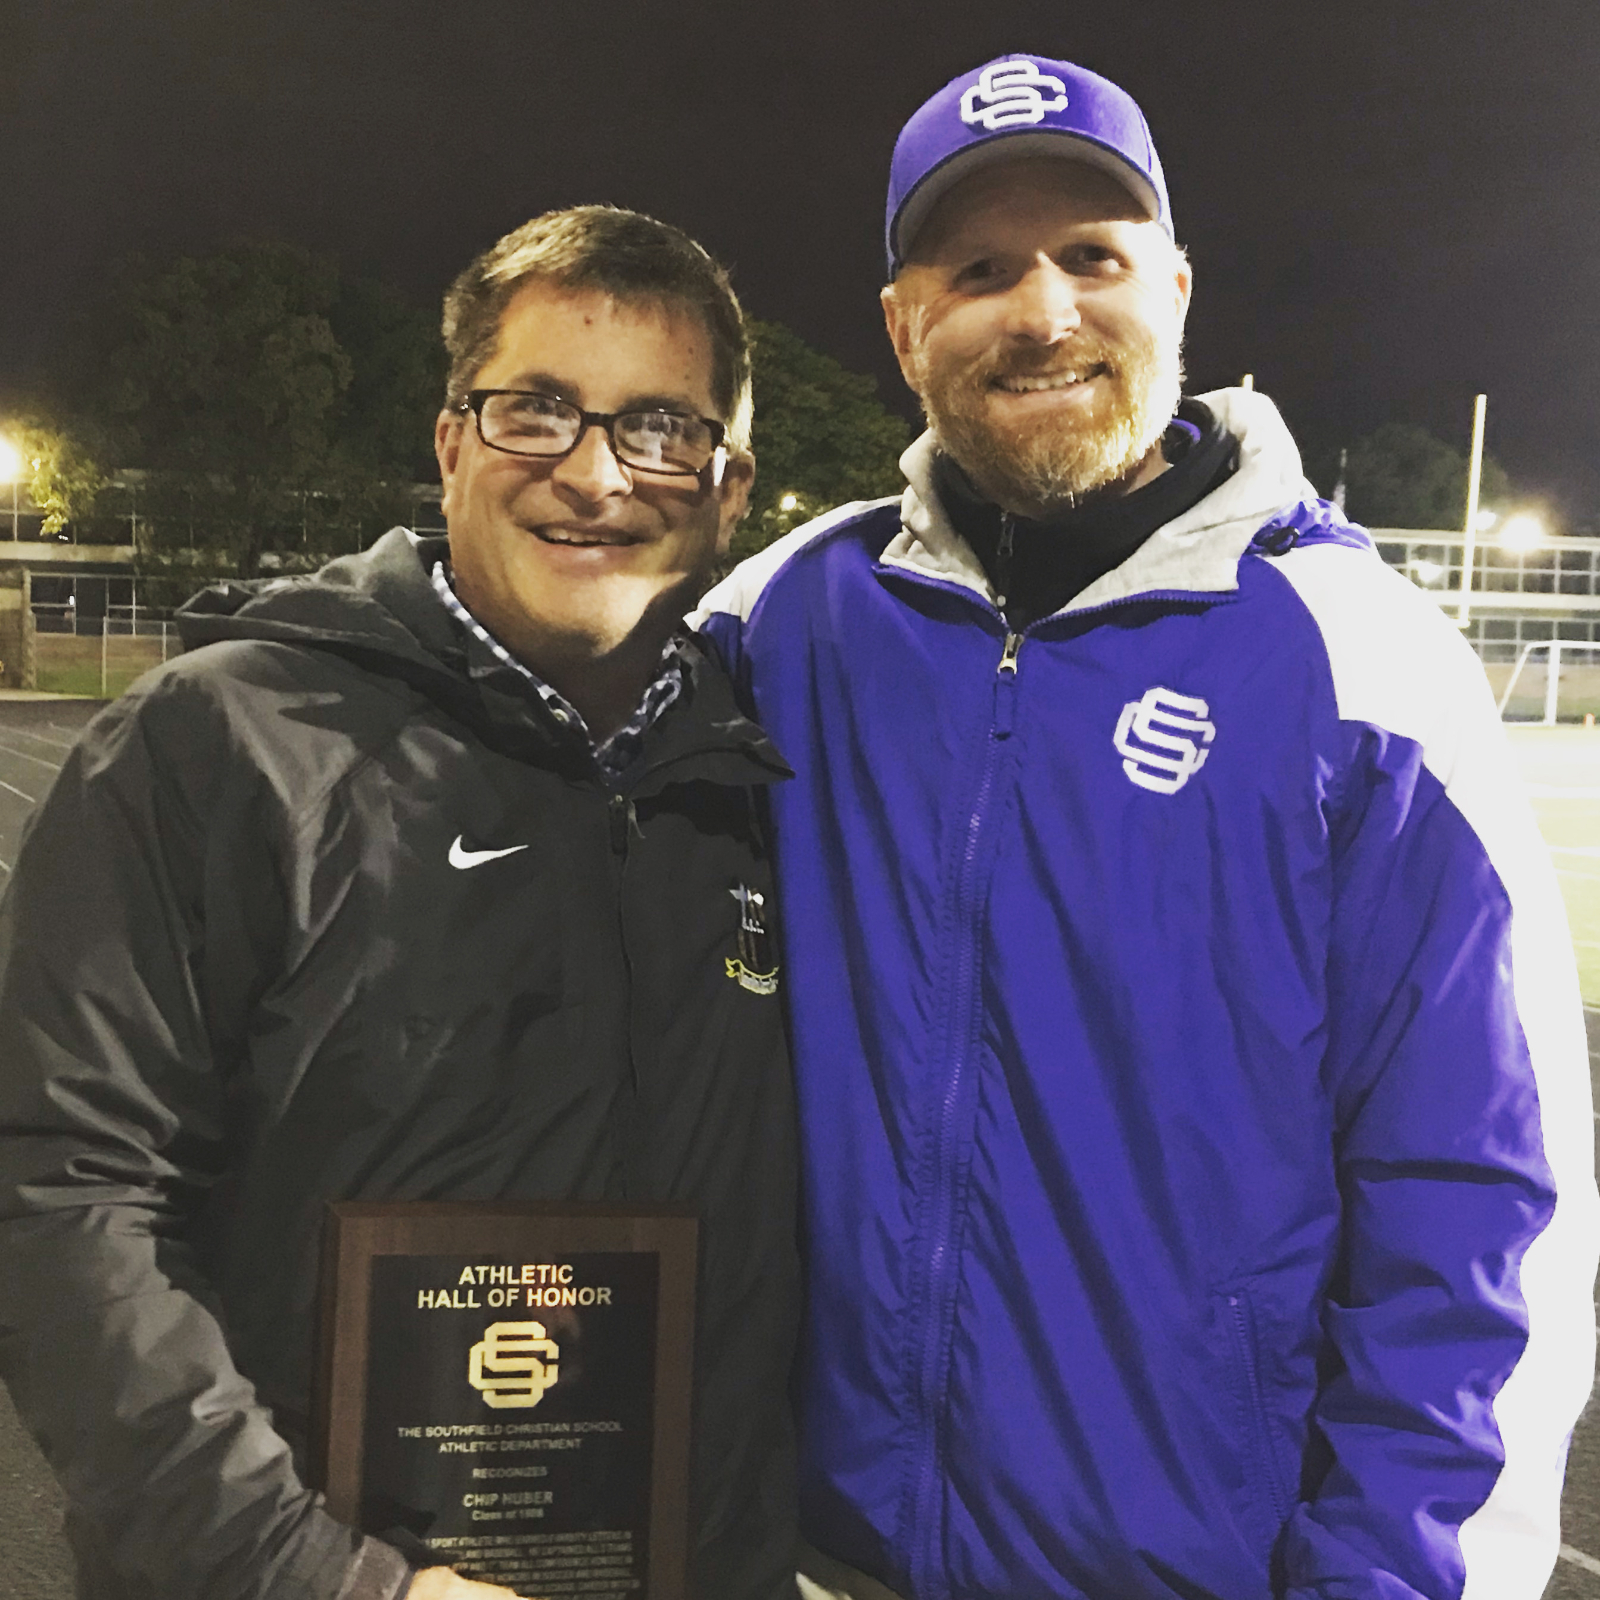 Chip Huber '86 Inducted into the SCS Athletics Hall of Honor